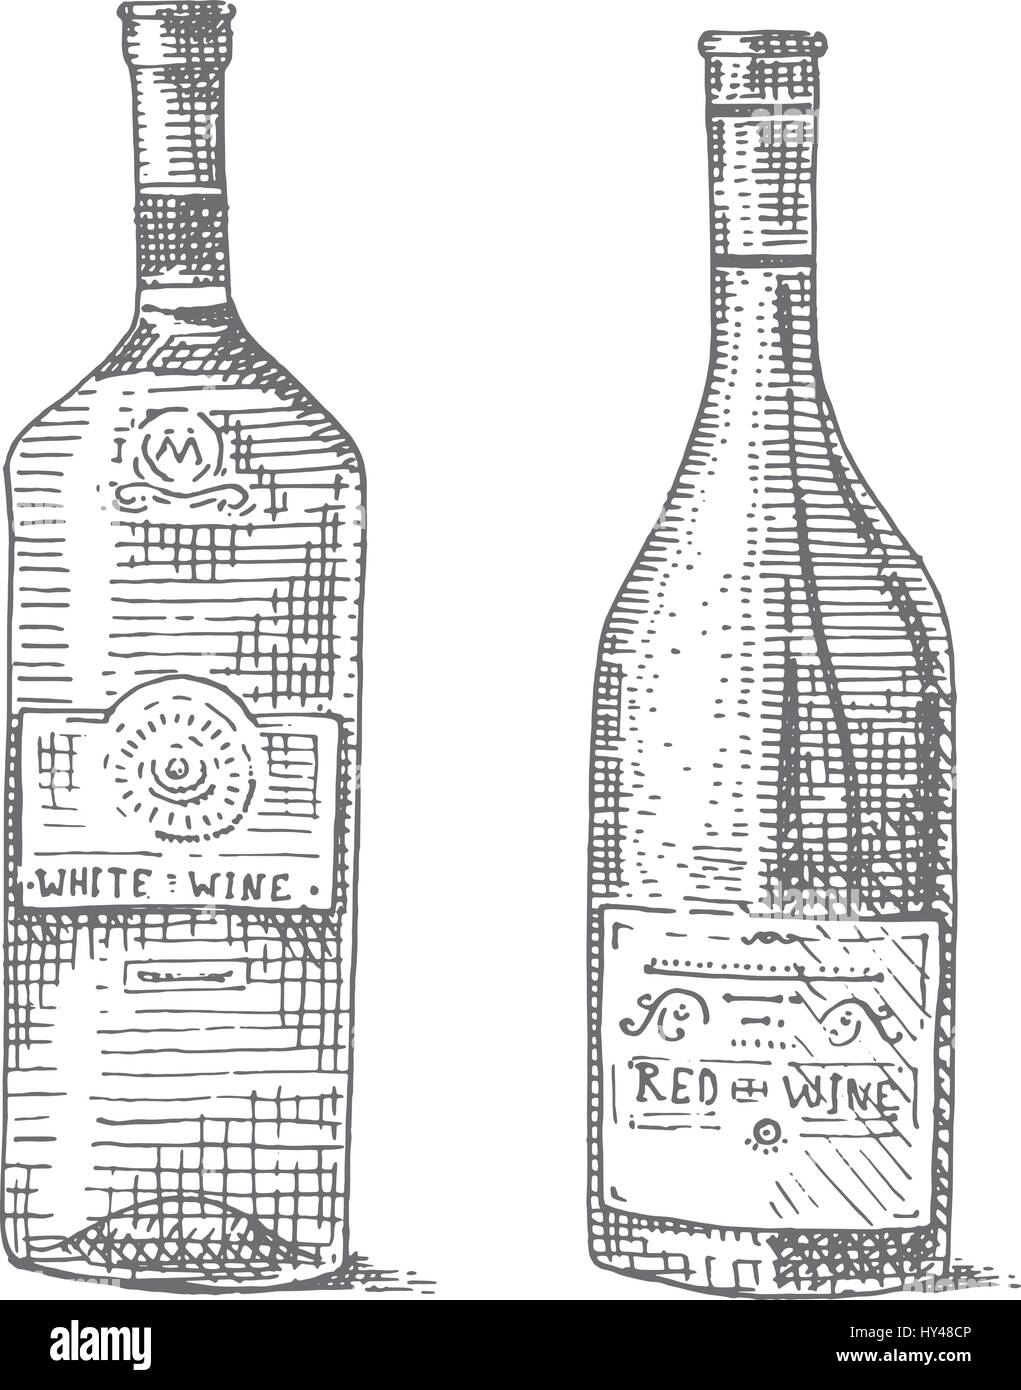 Wine Bottle Hand Drawn Engraved Old Looking Vintage Illustration In Scratchboard Style